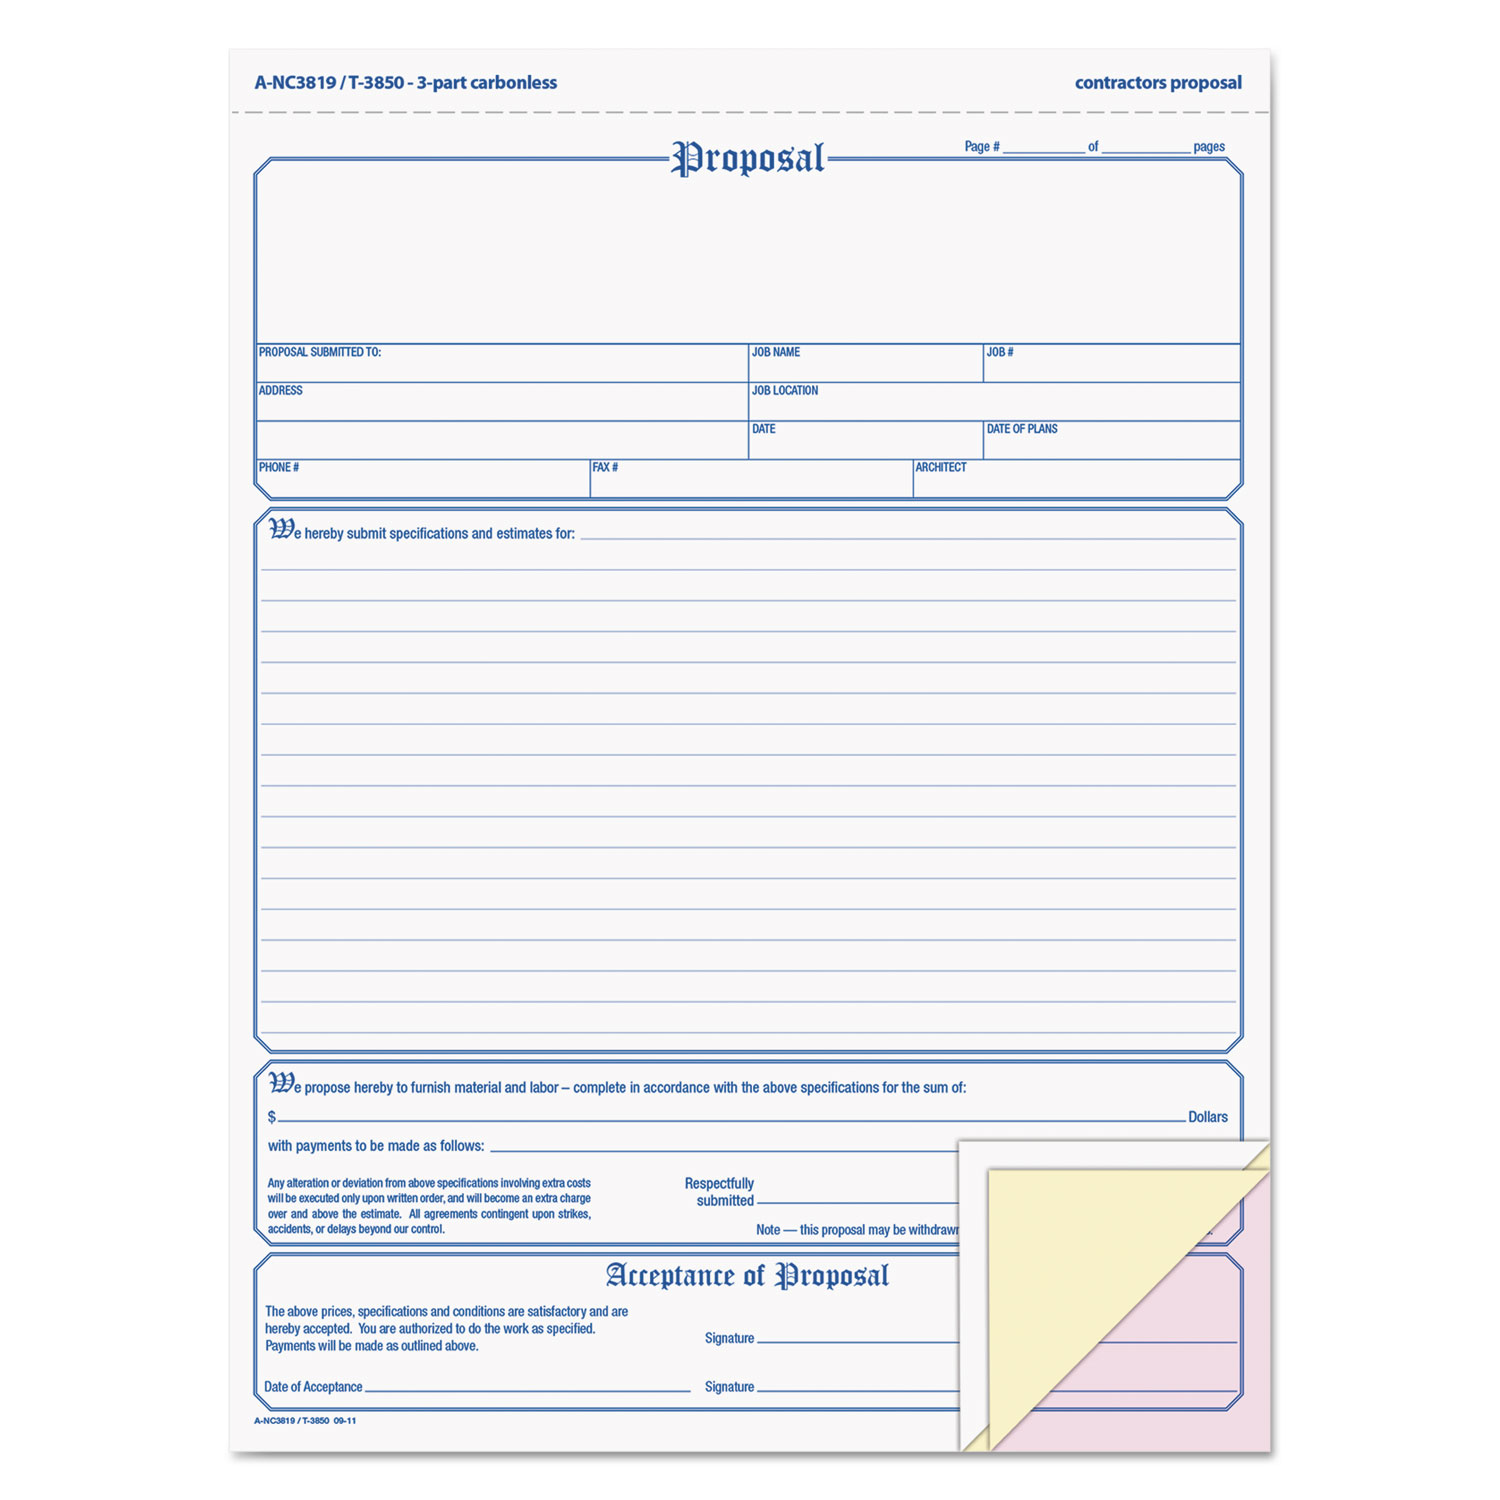 Contractor Proposal Form by Adams ABFNC3819 OnTimeSupplies – Proposal Form